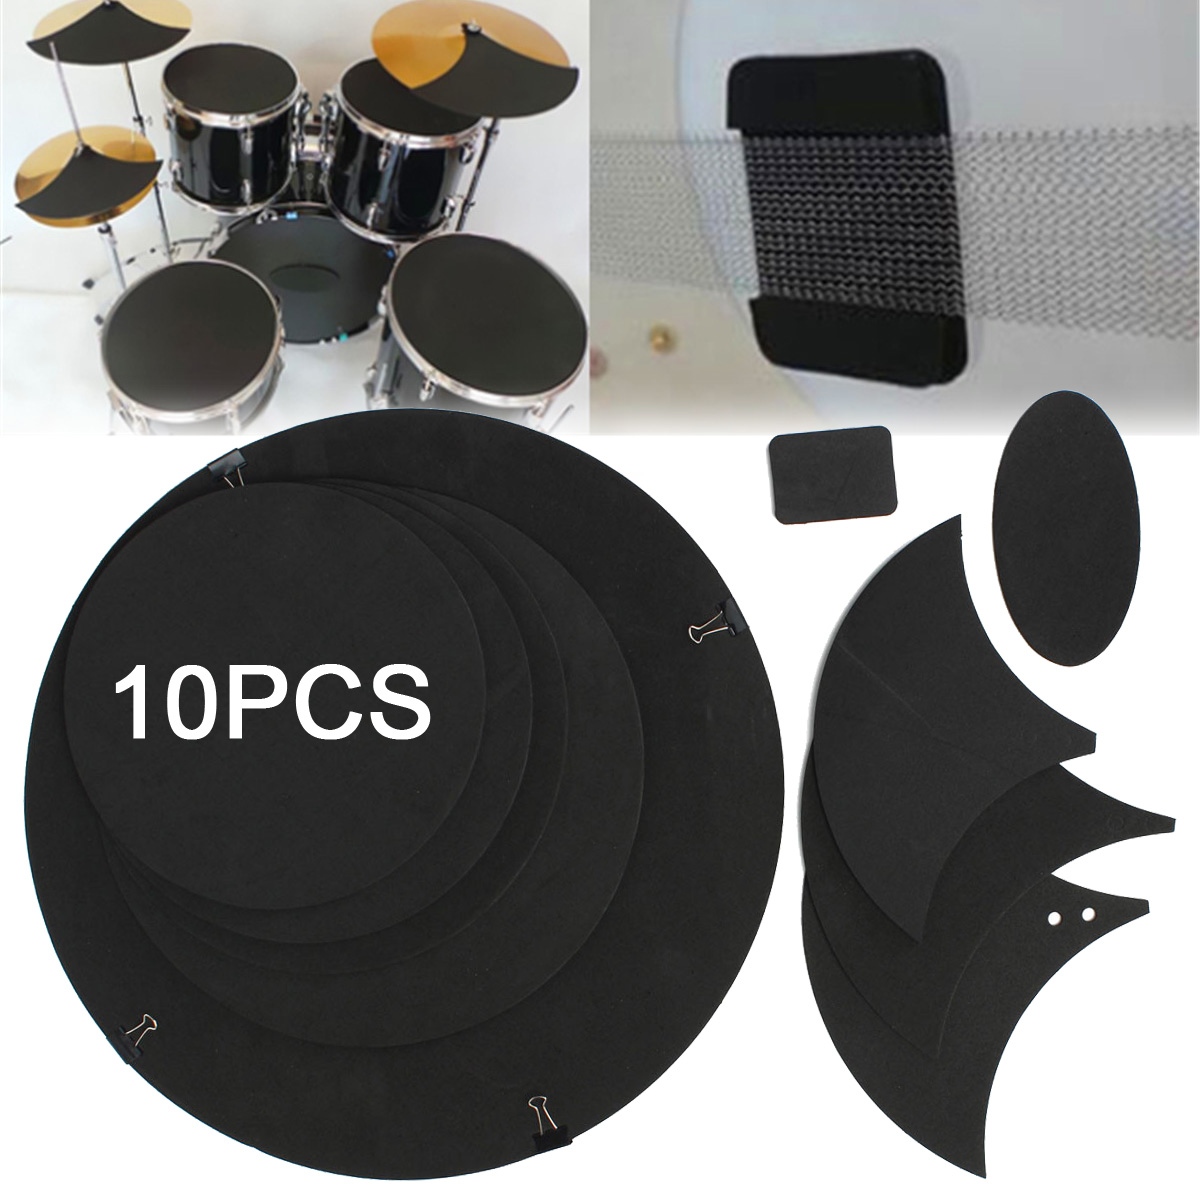 10Pcs Bass Snare Tom Sound off / Drums Silencer Pad Quiet Drum Mute Silencer Drumming Practice Pad Set Black